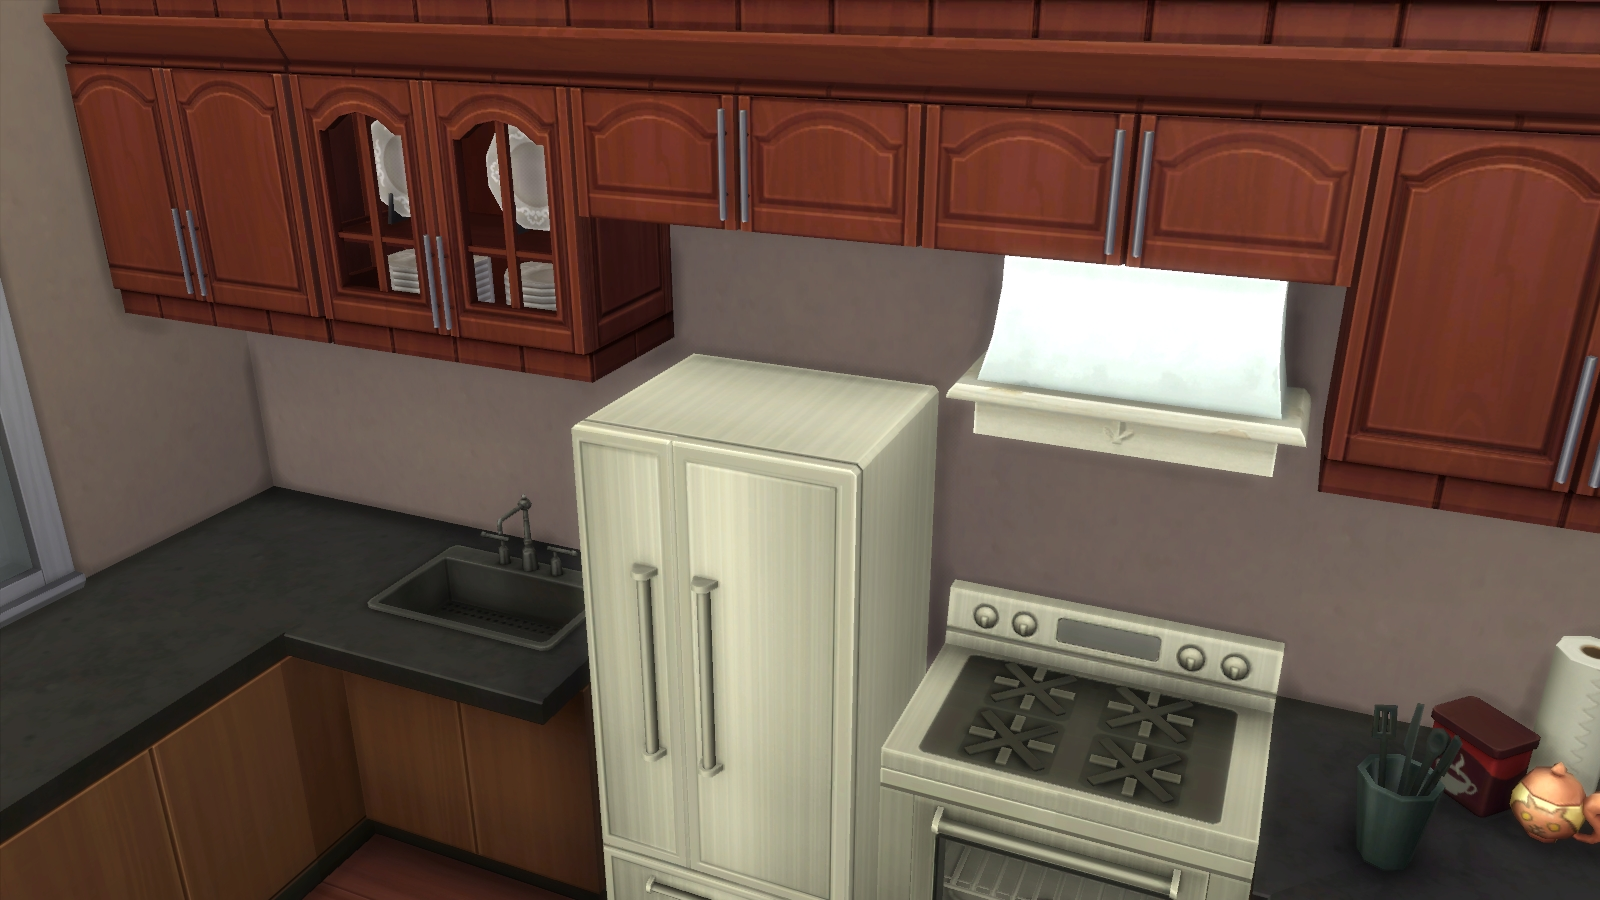 Setting Up A Bakery In The Sims 4 Get To Work Simcitizens: kitchen setting pictures